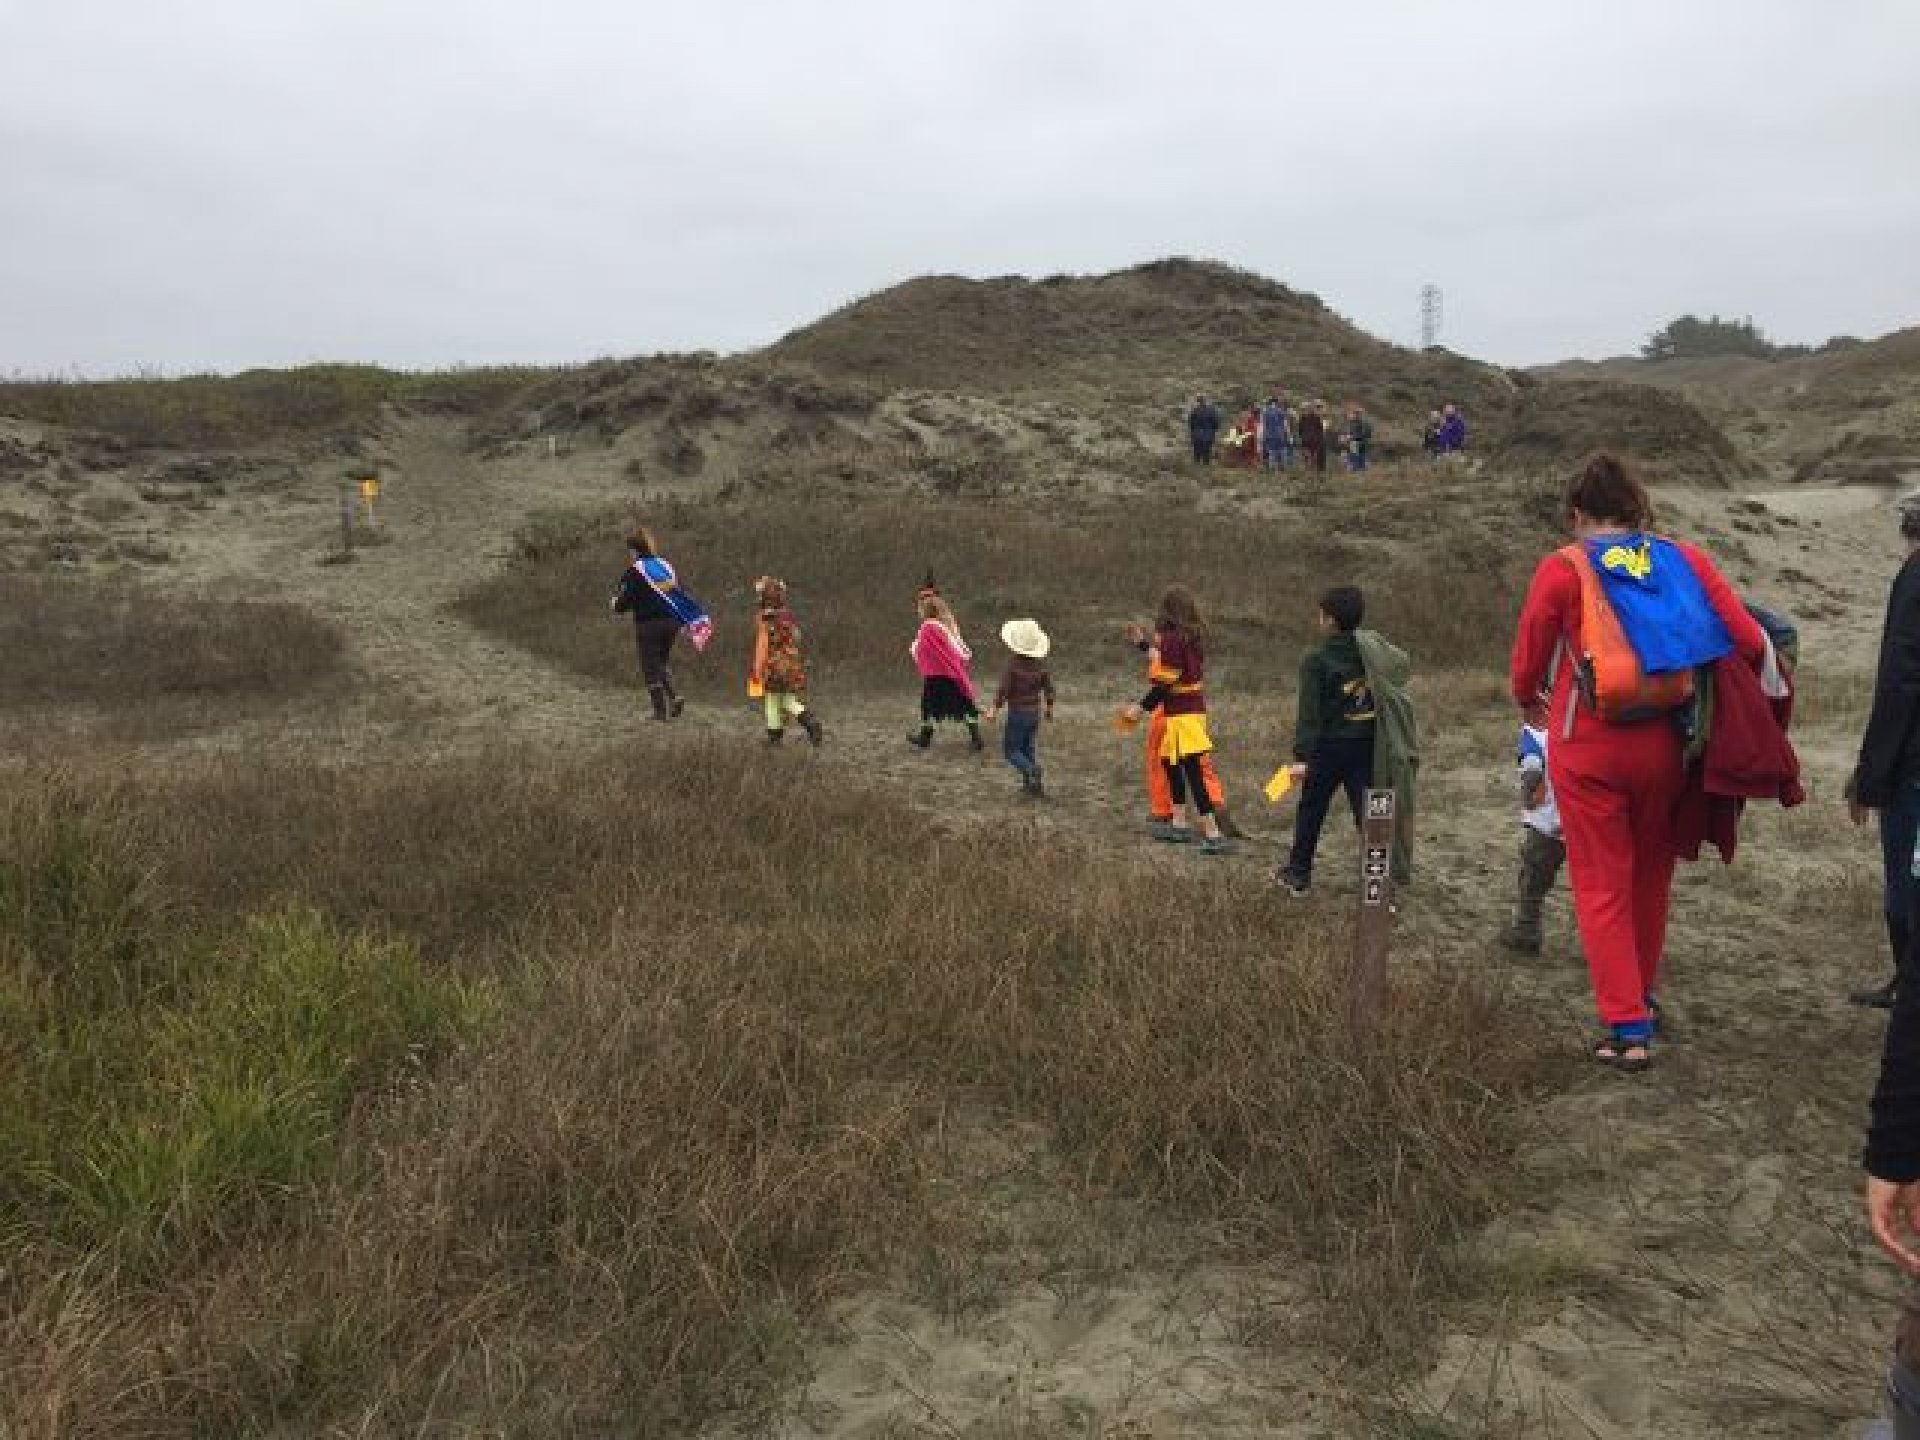 Local community members on the Humboldt dunes for the Friends of the Dunes' Halloween Spooky Dunes tour on Oct. 29, 2016. Photo by Kyra Skylark.